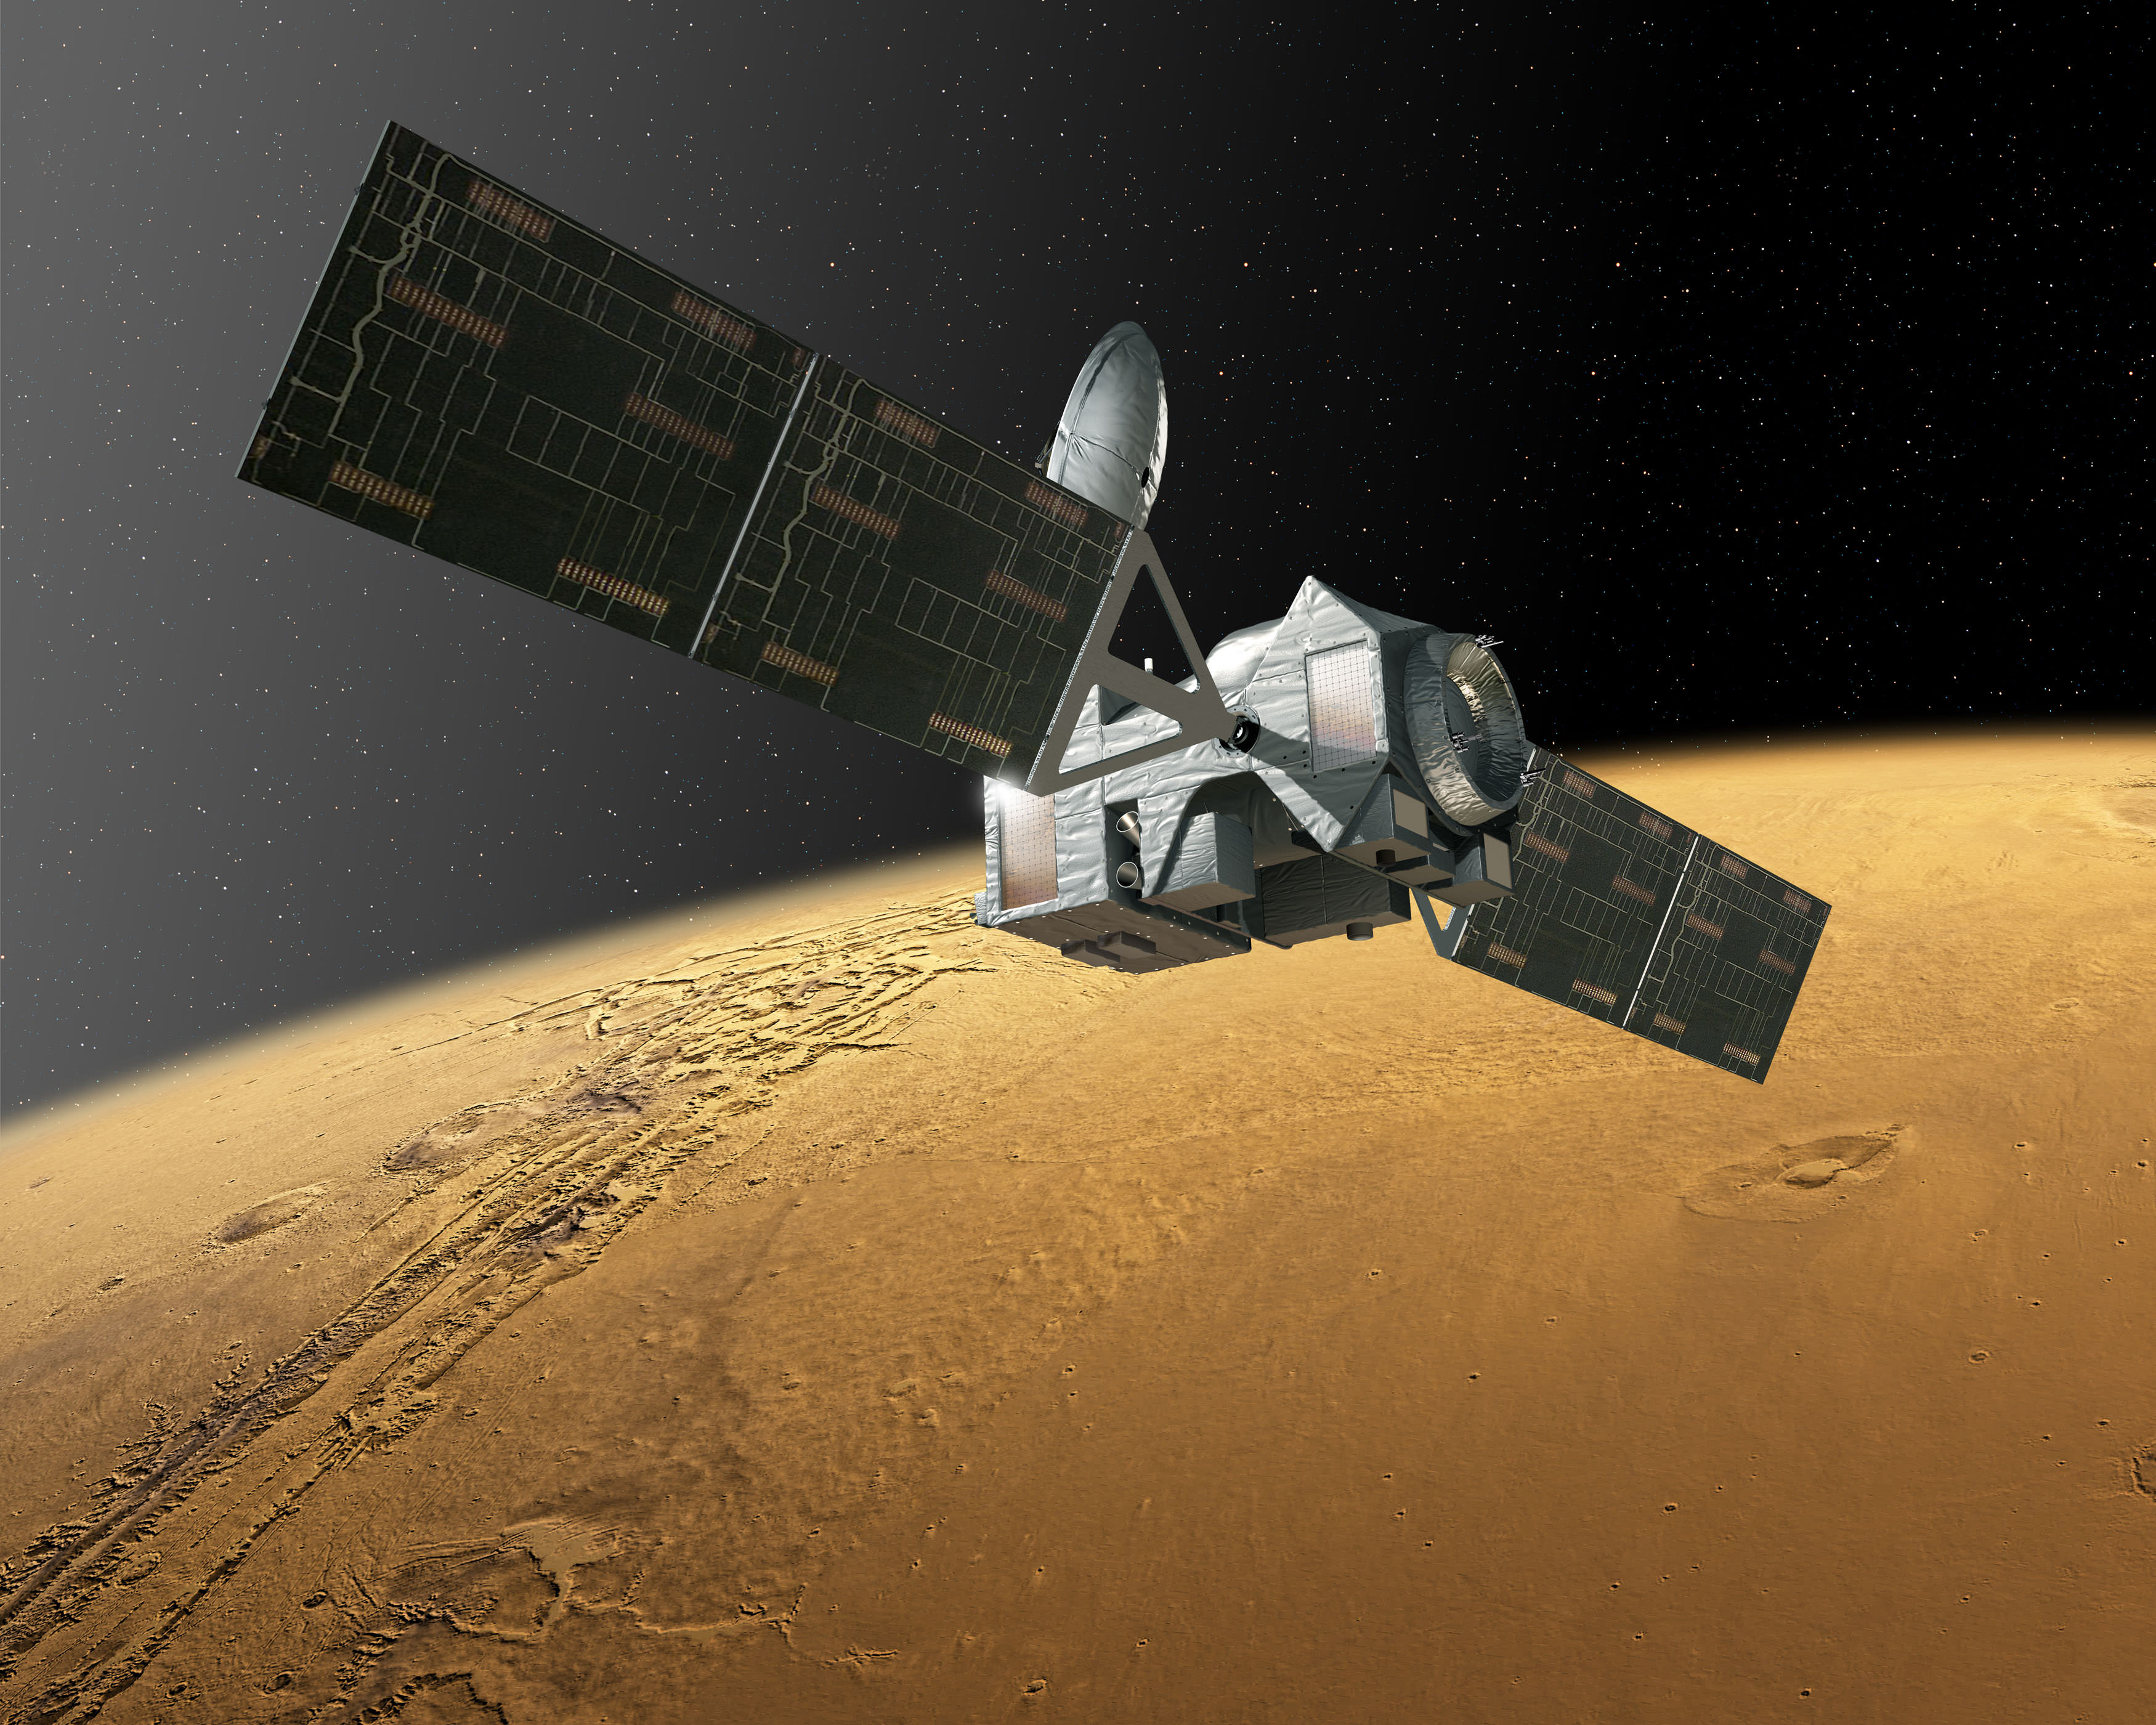 The European/Russian ExoMars Trace Gas Orbiter (TGO) will launch in 2016 and sniff the Martian atmosphere for signs of methane which could originate for either biological or geological mechanisms. Credit: ESA